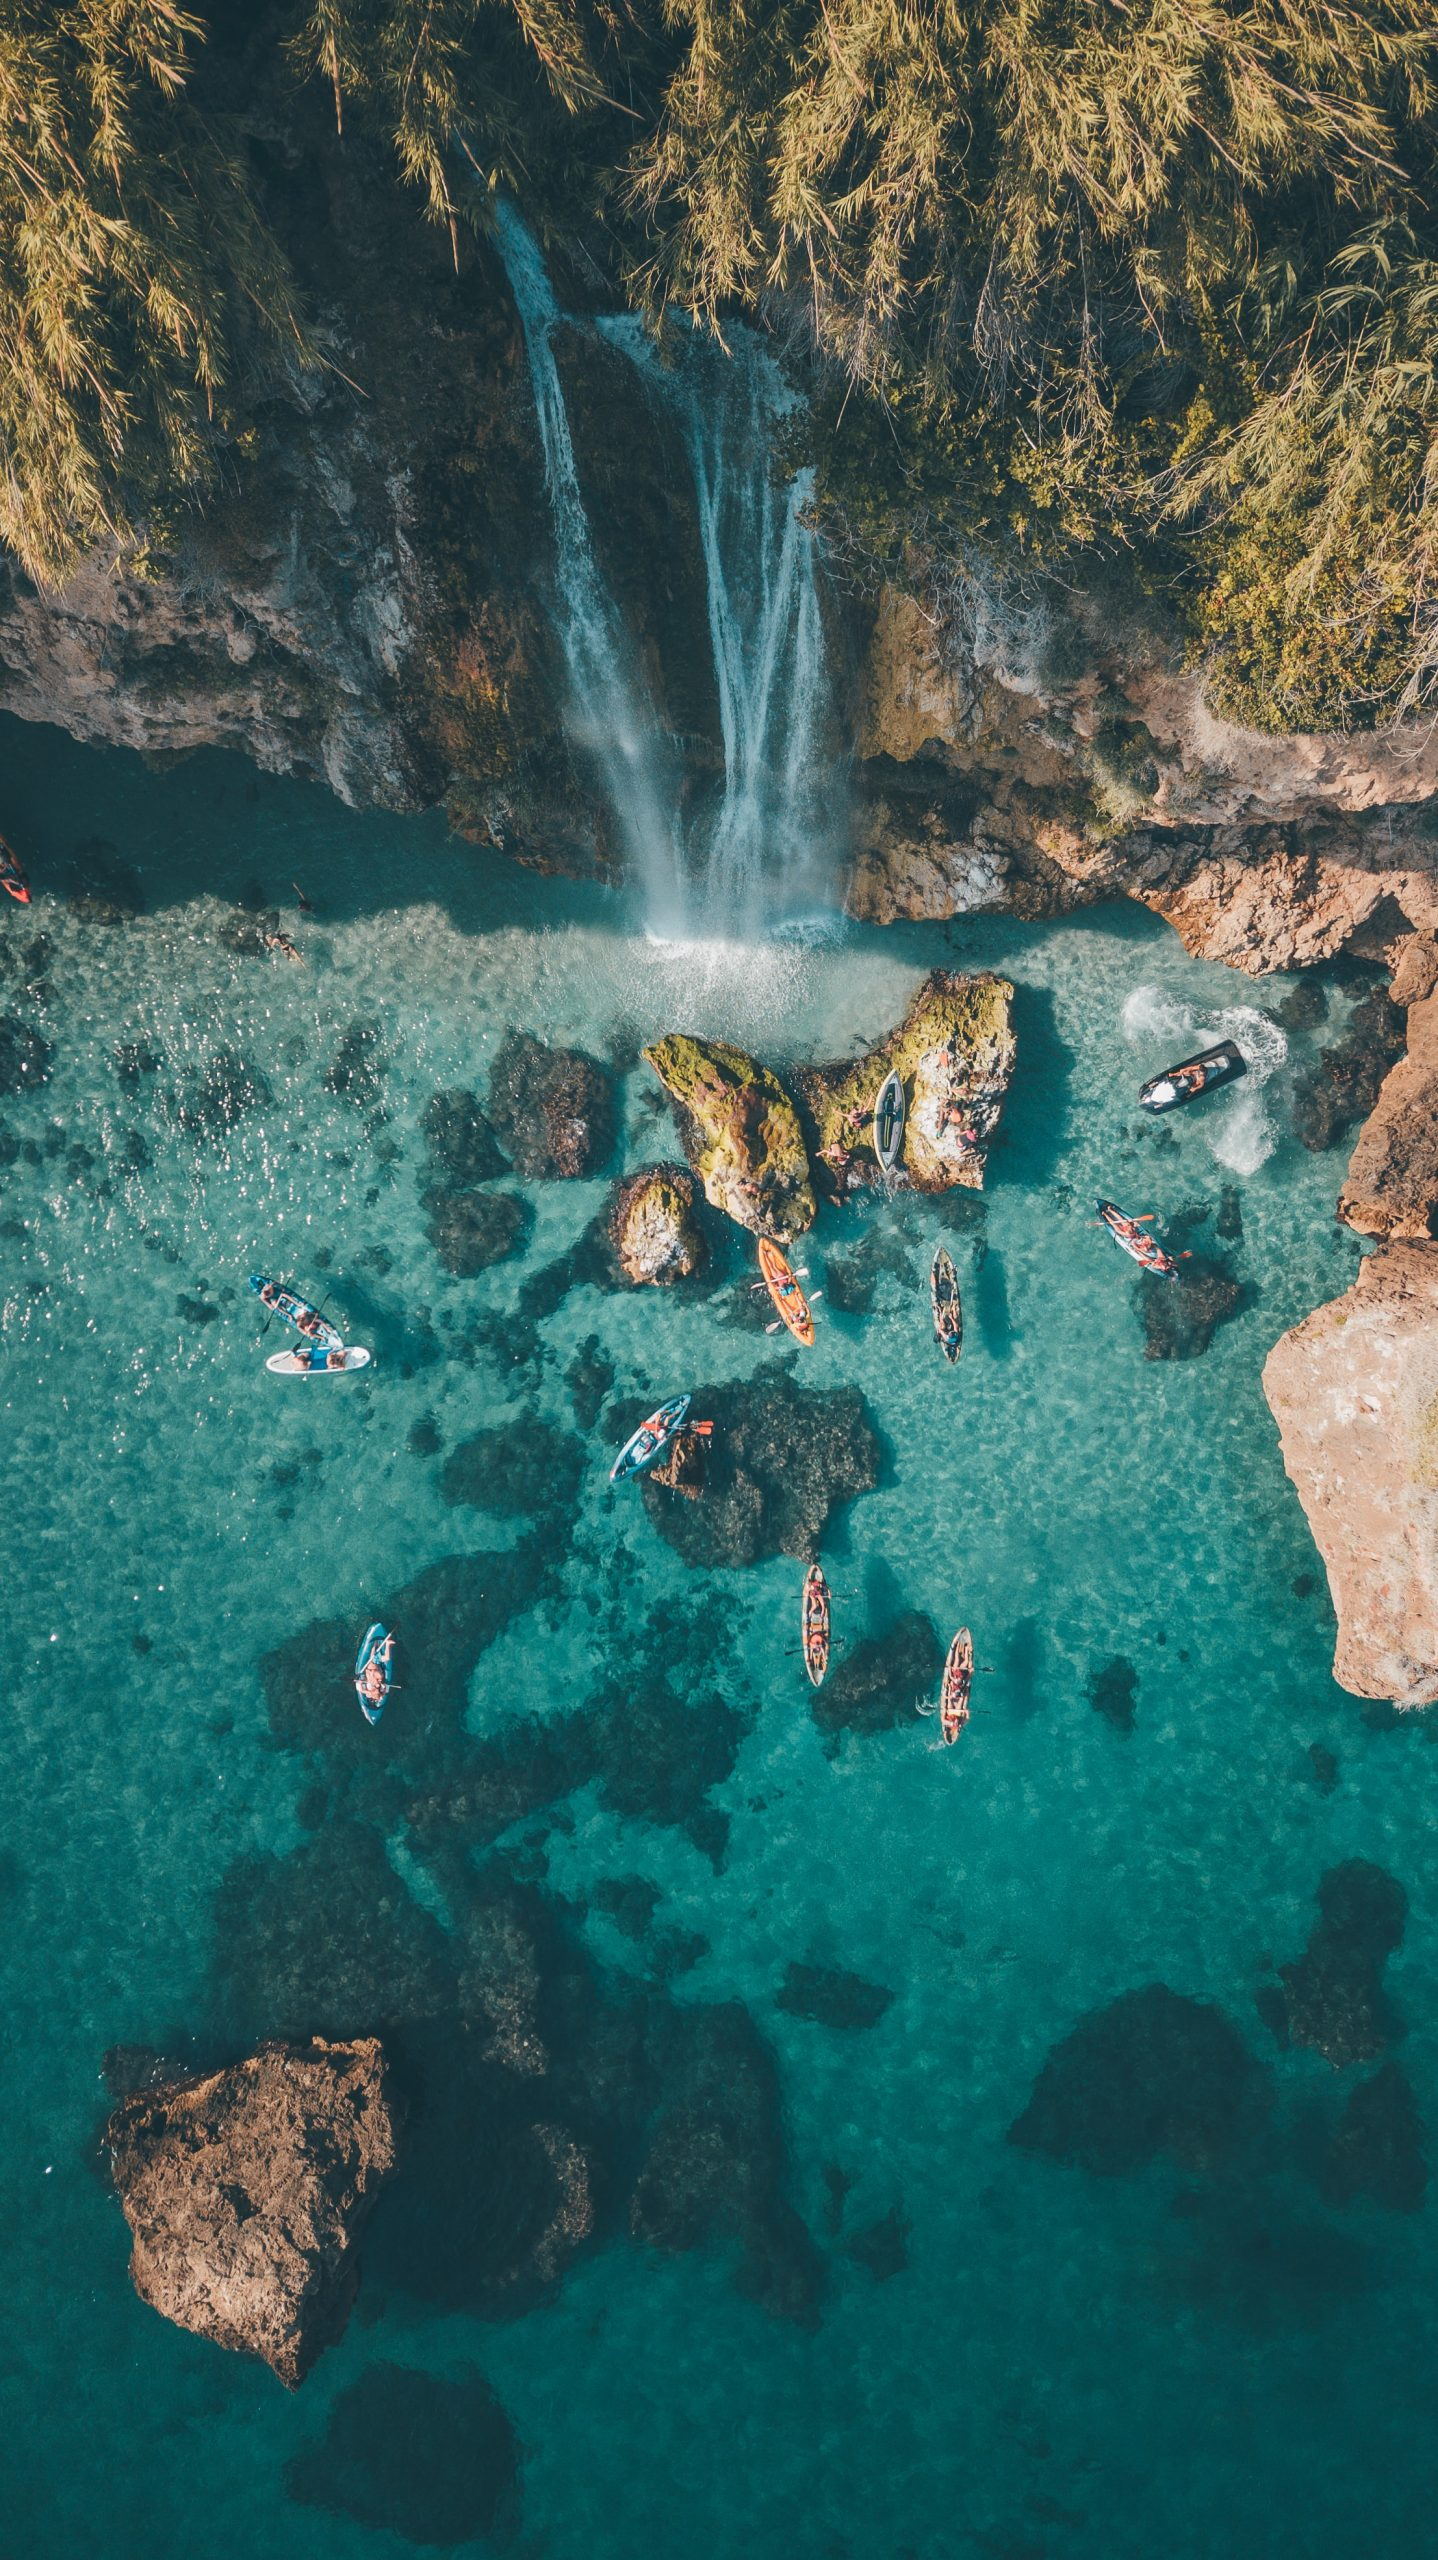 aerial photography over the ocean, waterfall and surfers in the ocean